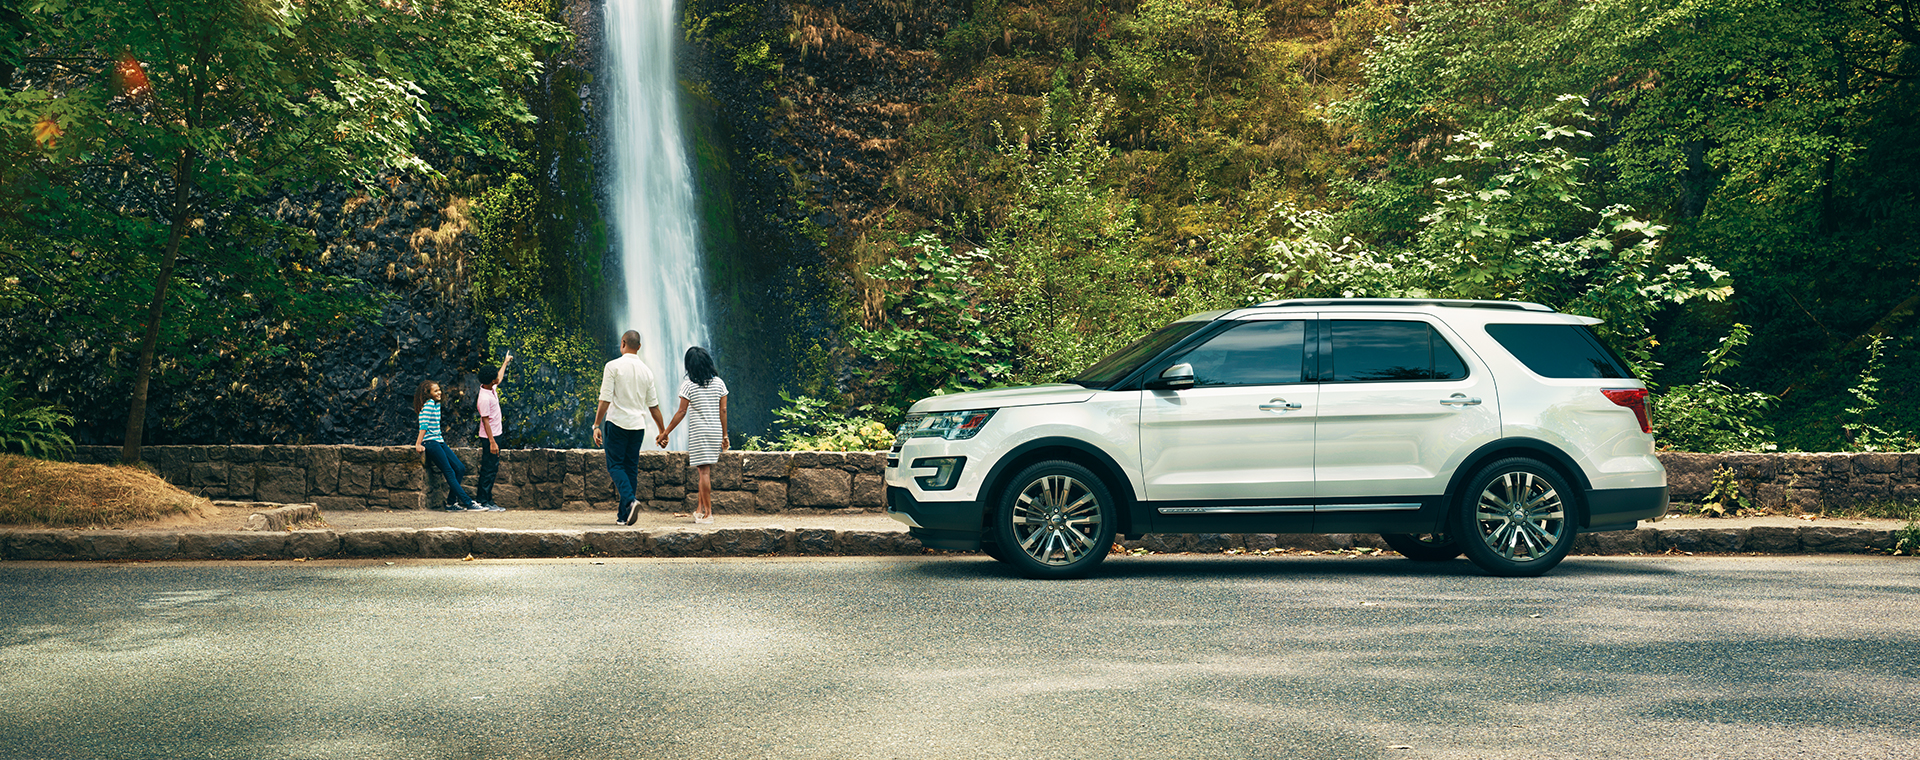 New Explorer inventory at Quirk Ford